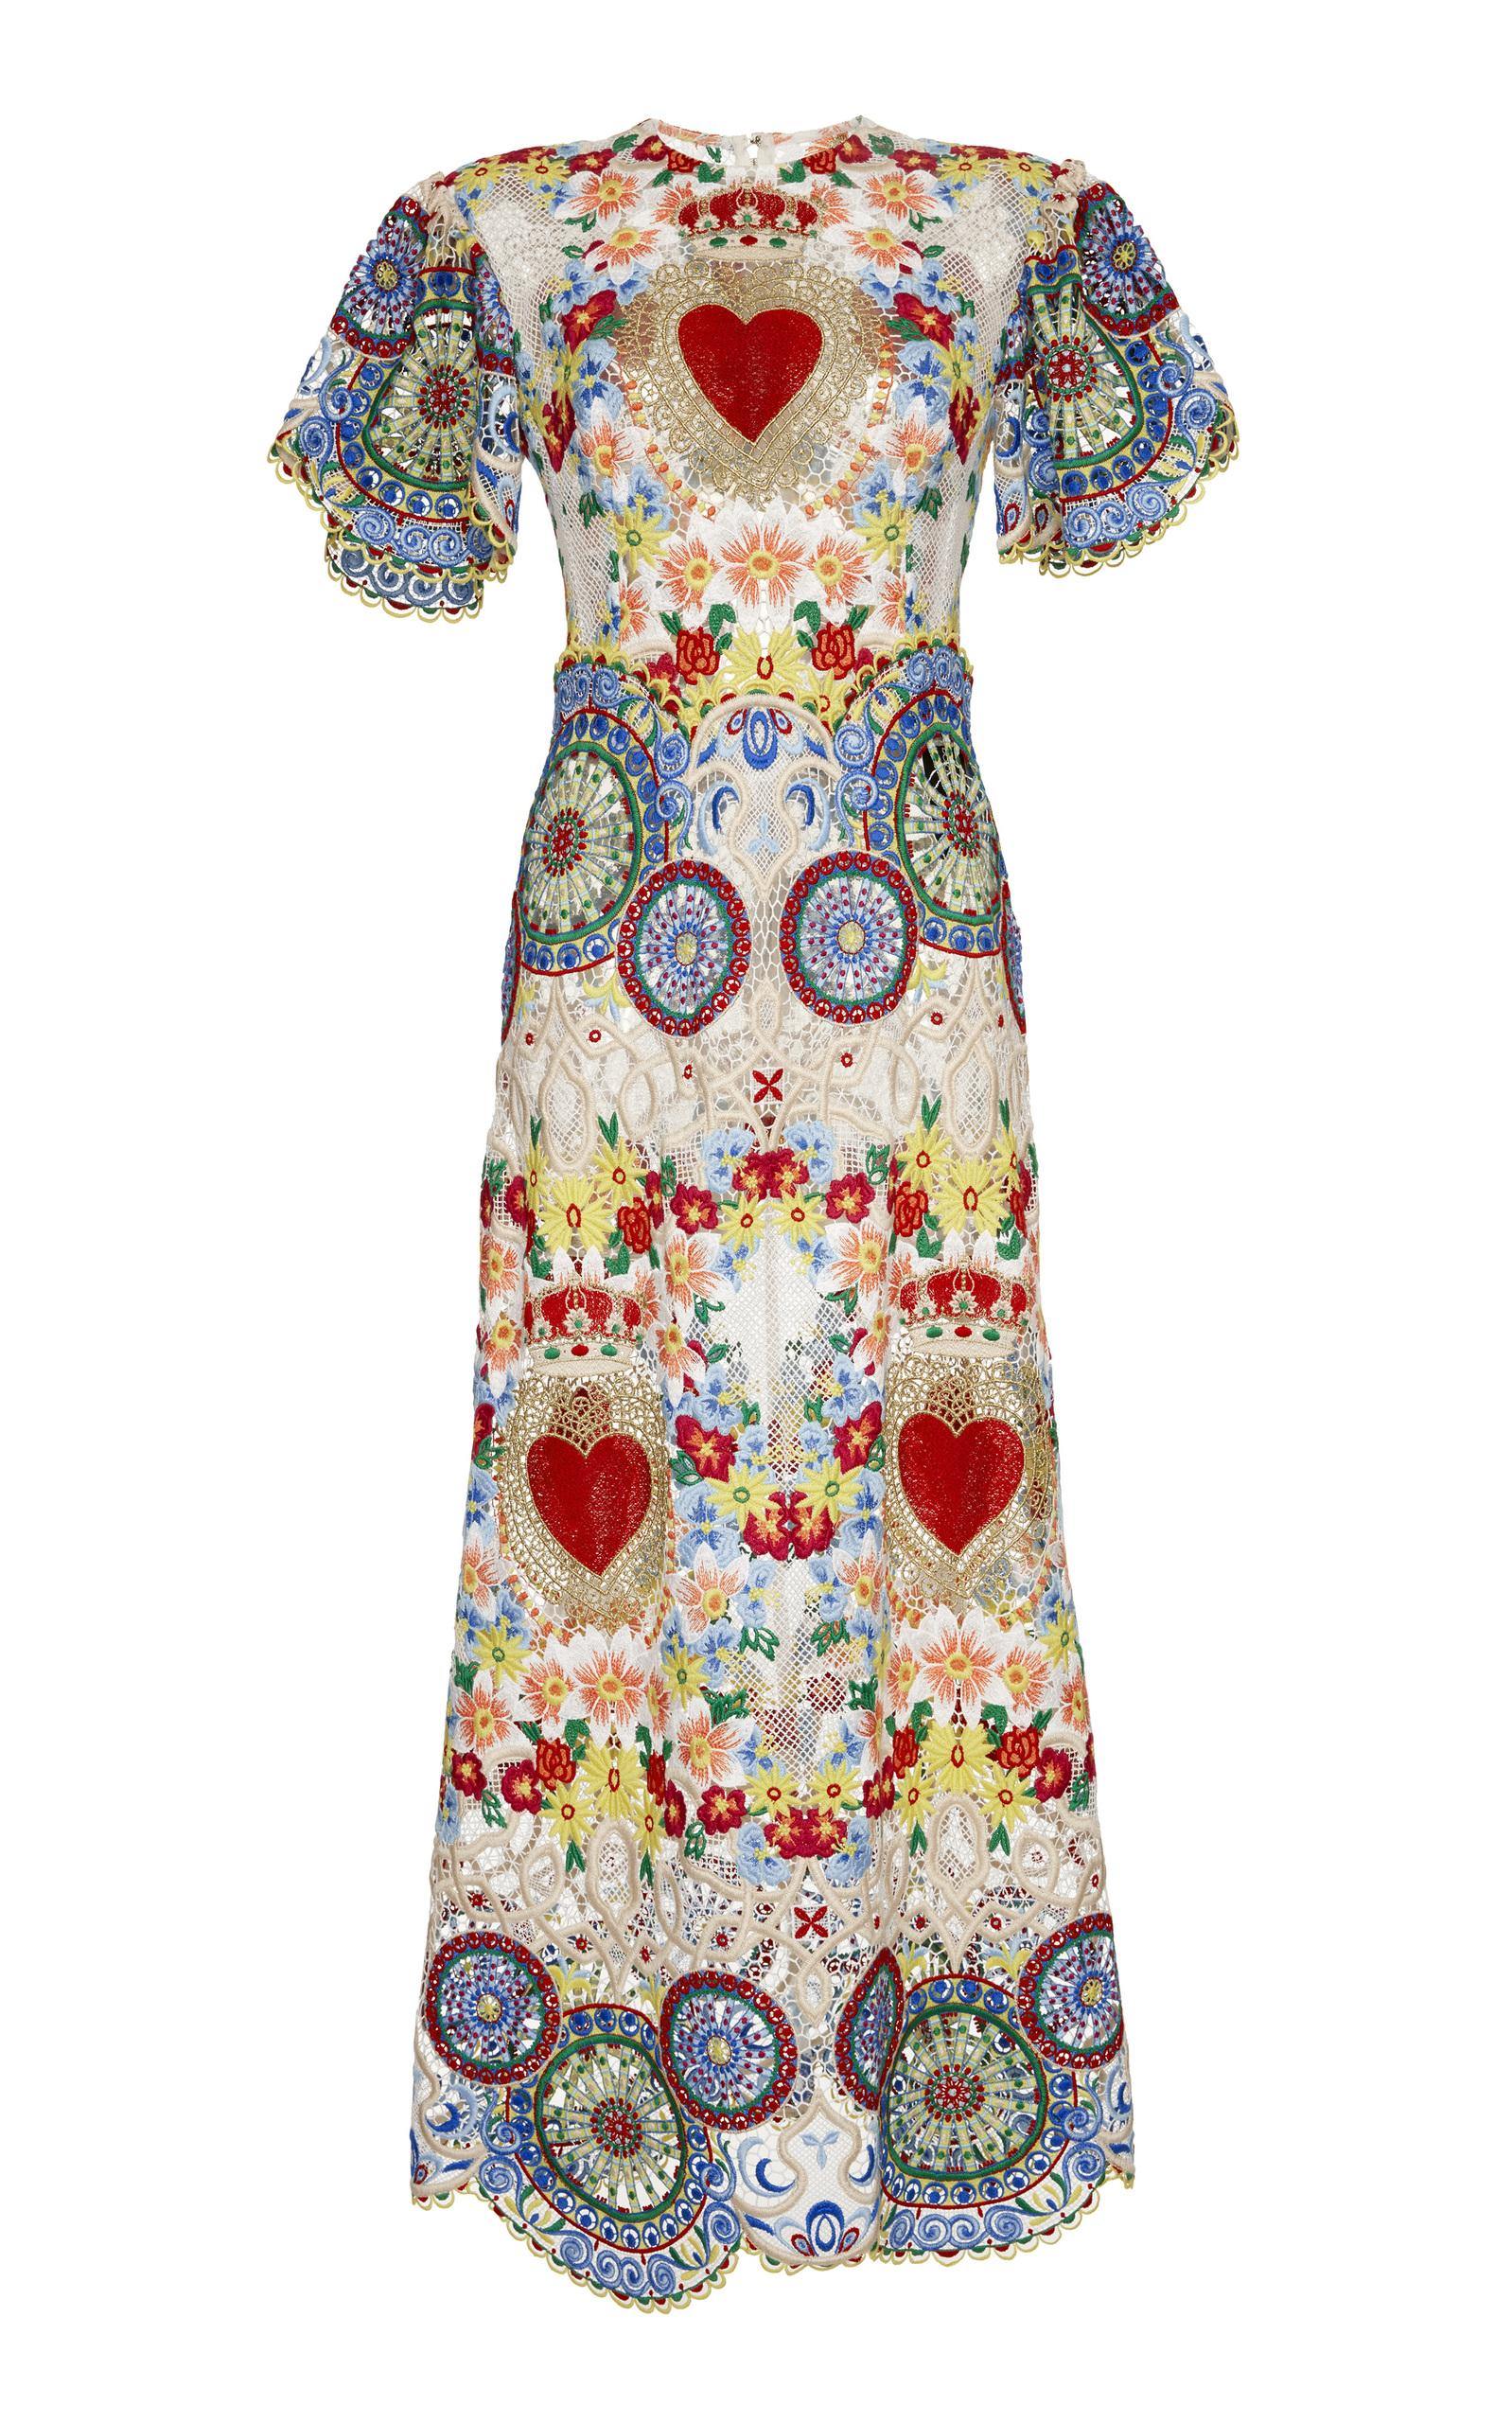 Dolce & Gabbana Short Sleeve Embroidered Dress In Multi